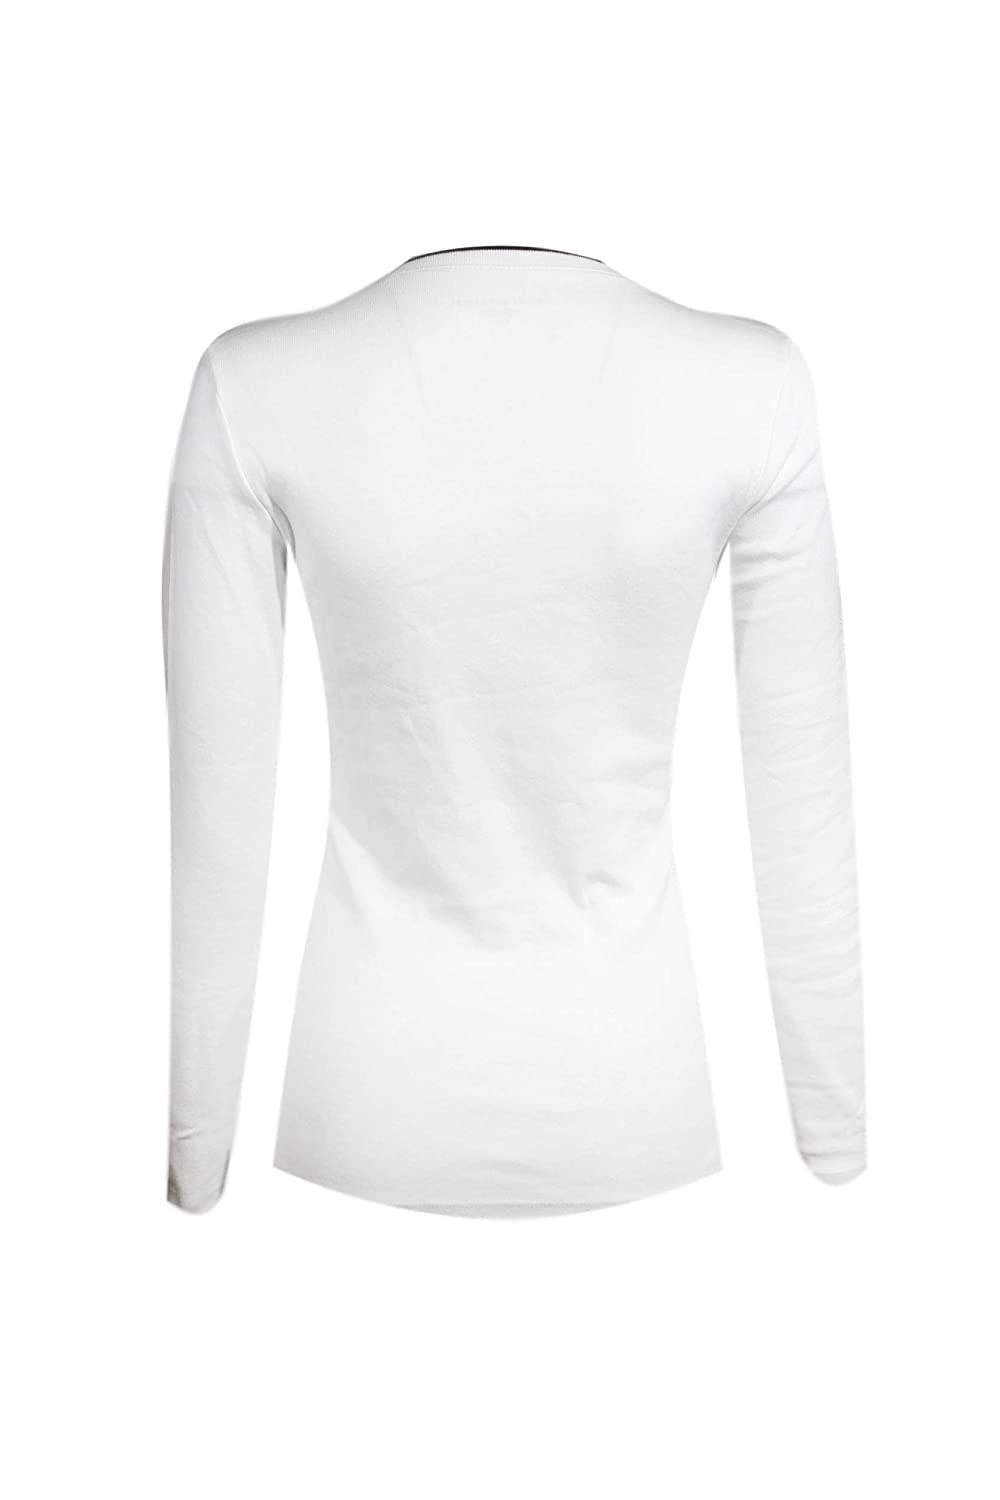 Tommy Hilfiger Womens Long Sleeve Tommy Logo Colored V-Neck T-Shirt